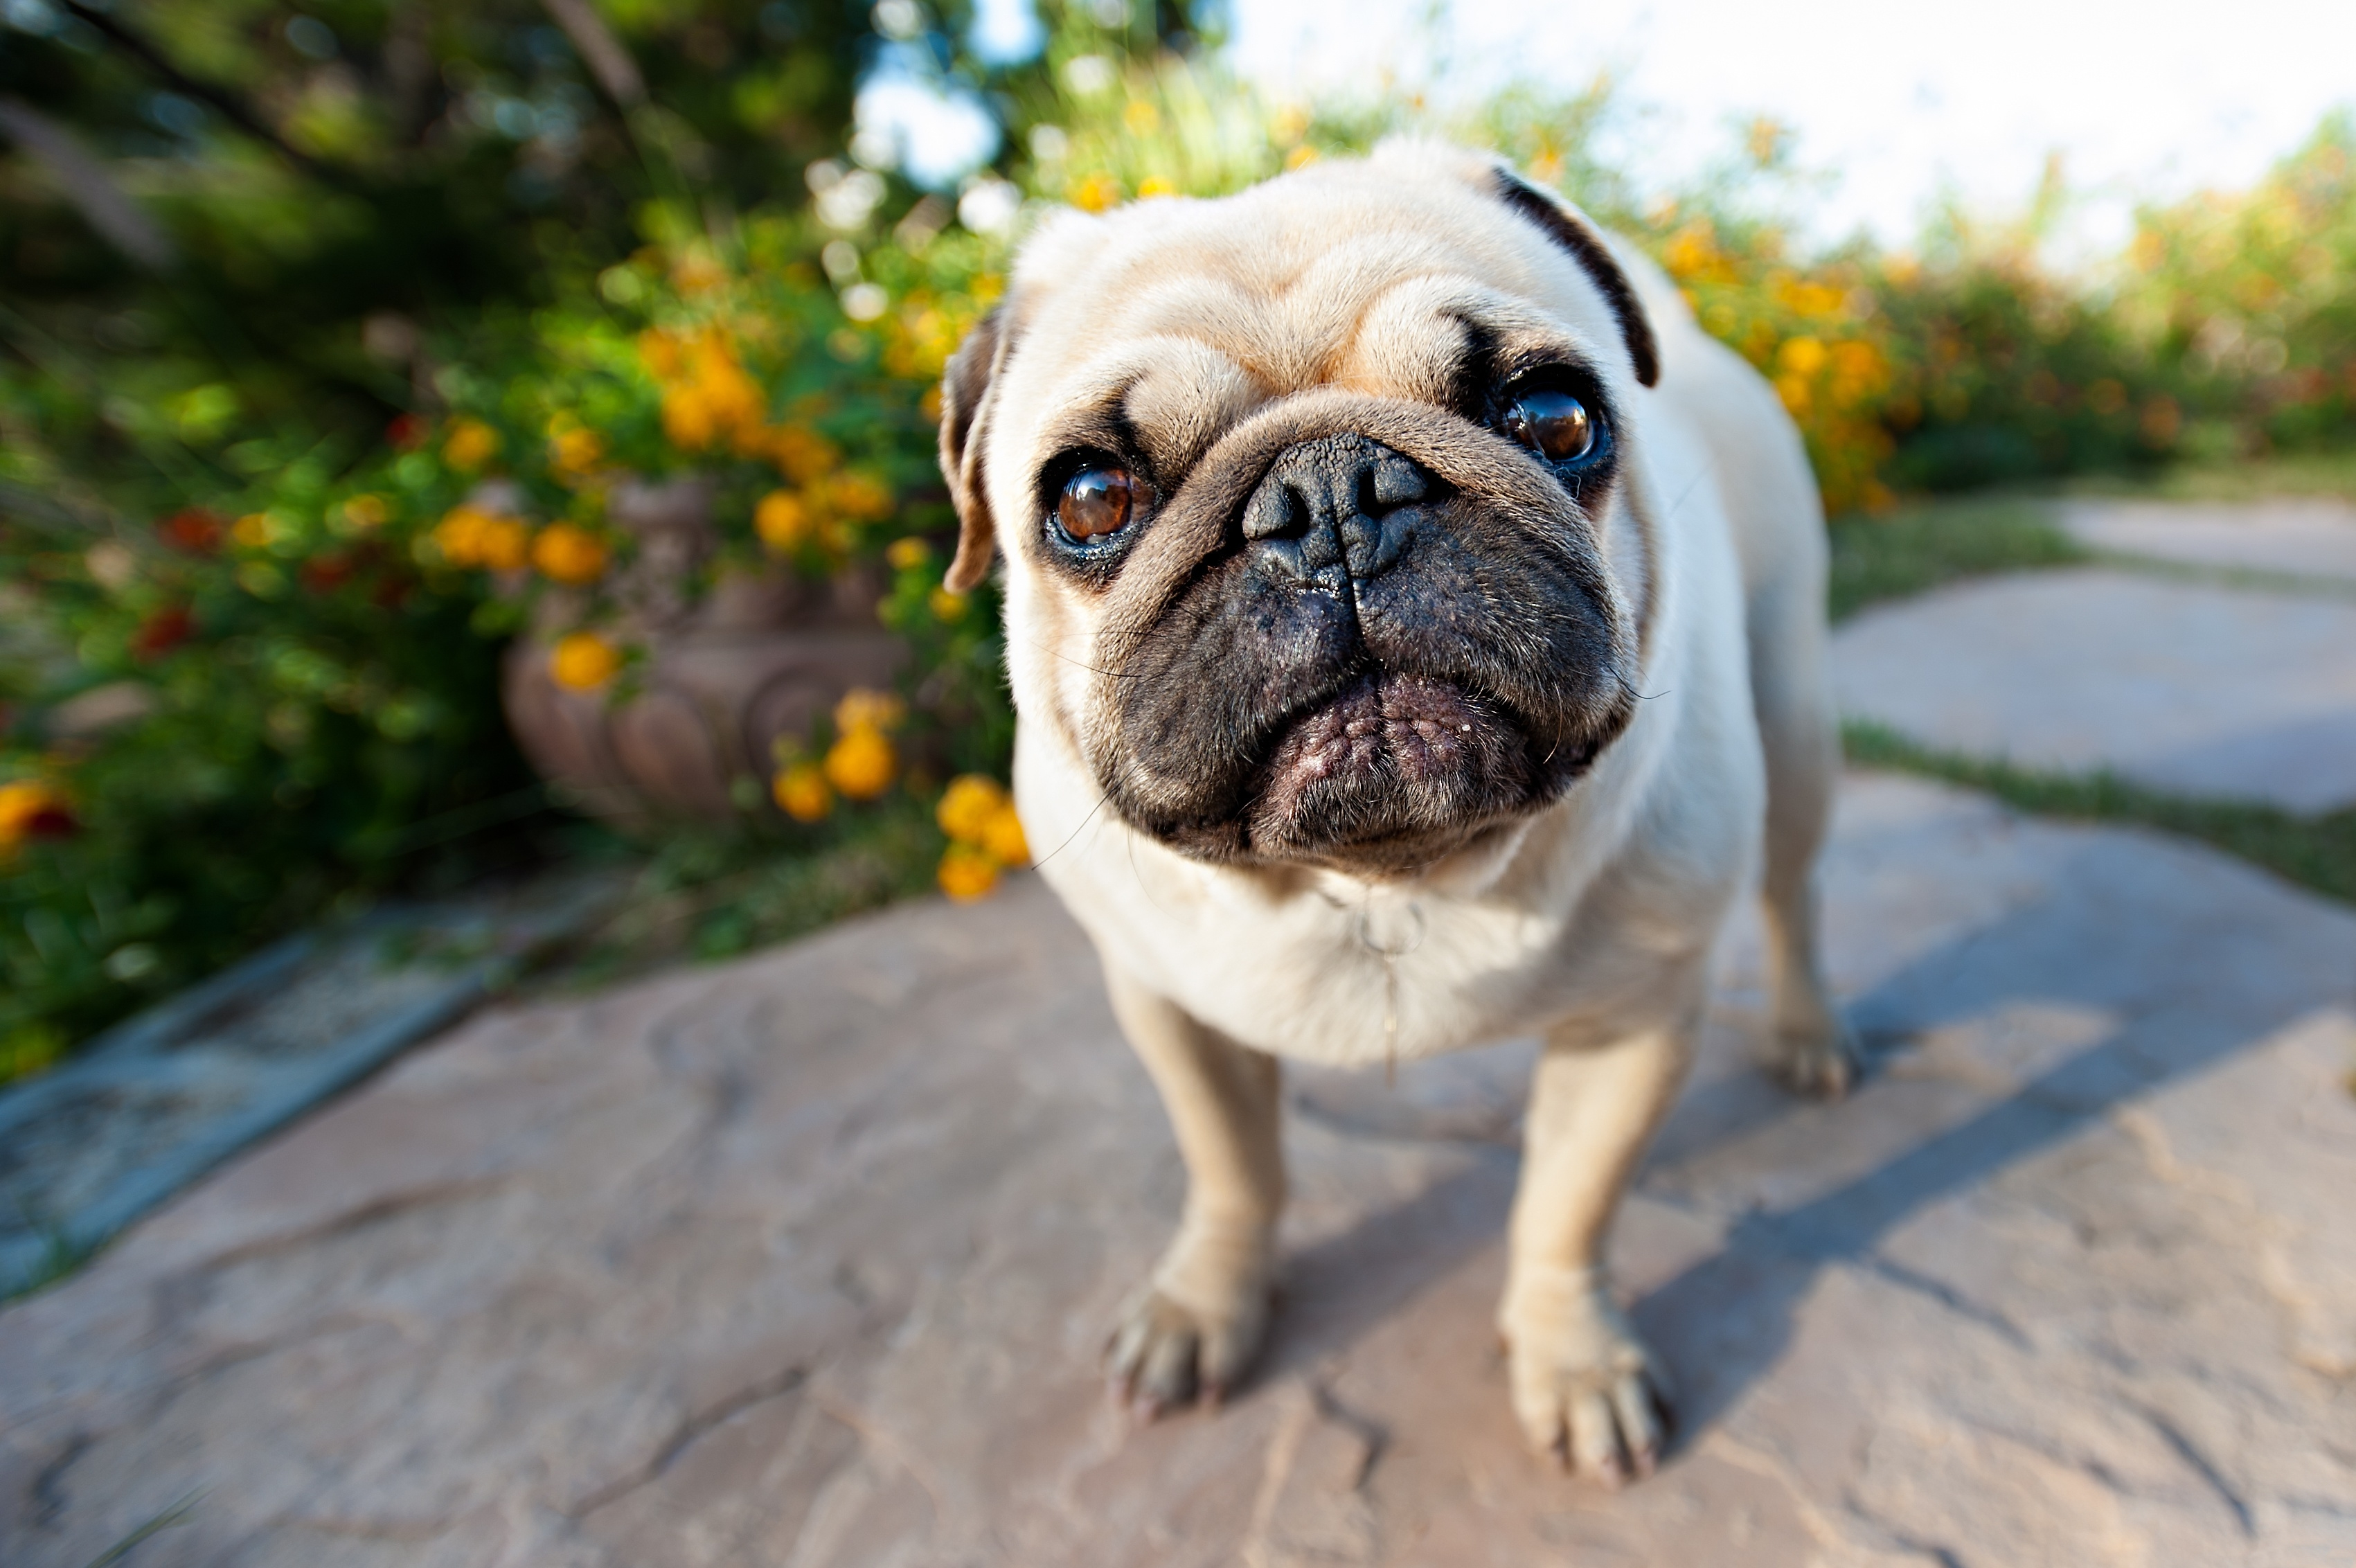 91832 download wallpaper Animals, Pug, Muzzle, Puppy screensavers and pictures for free